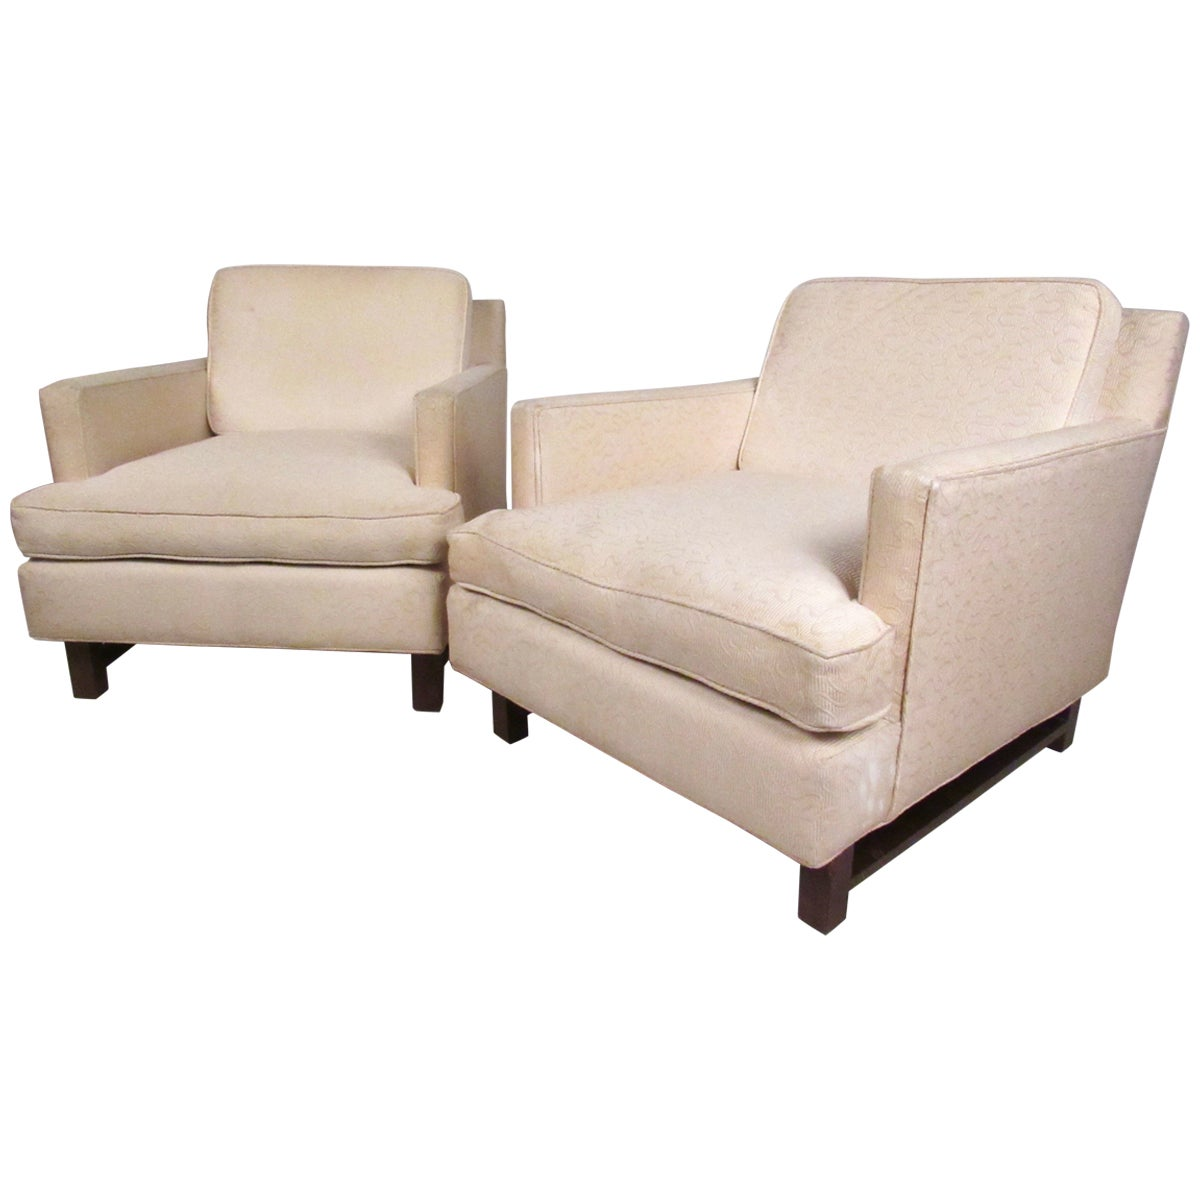 Pair of Vintage Modern Dunbar Style Lounge Chairs